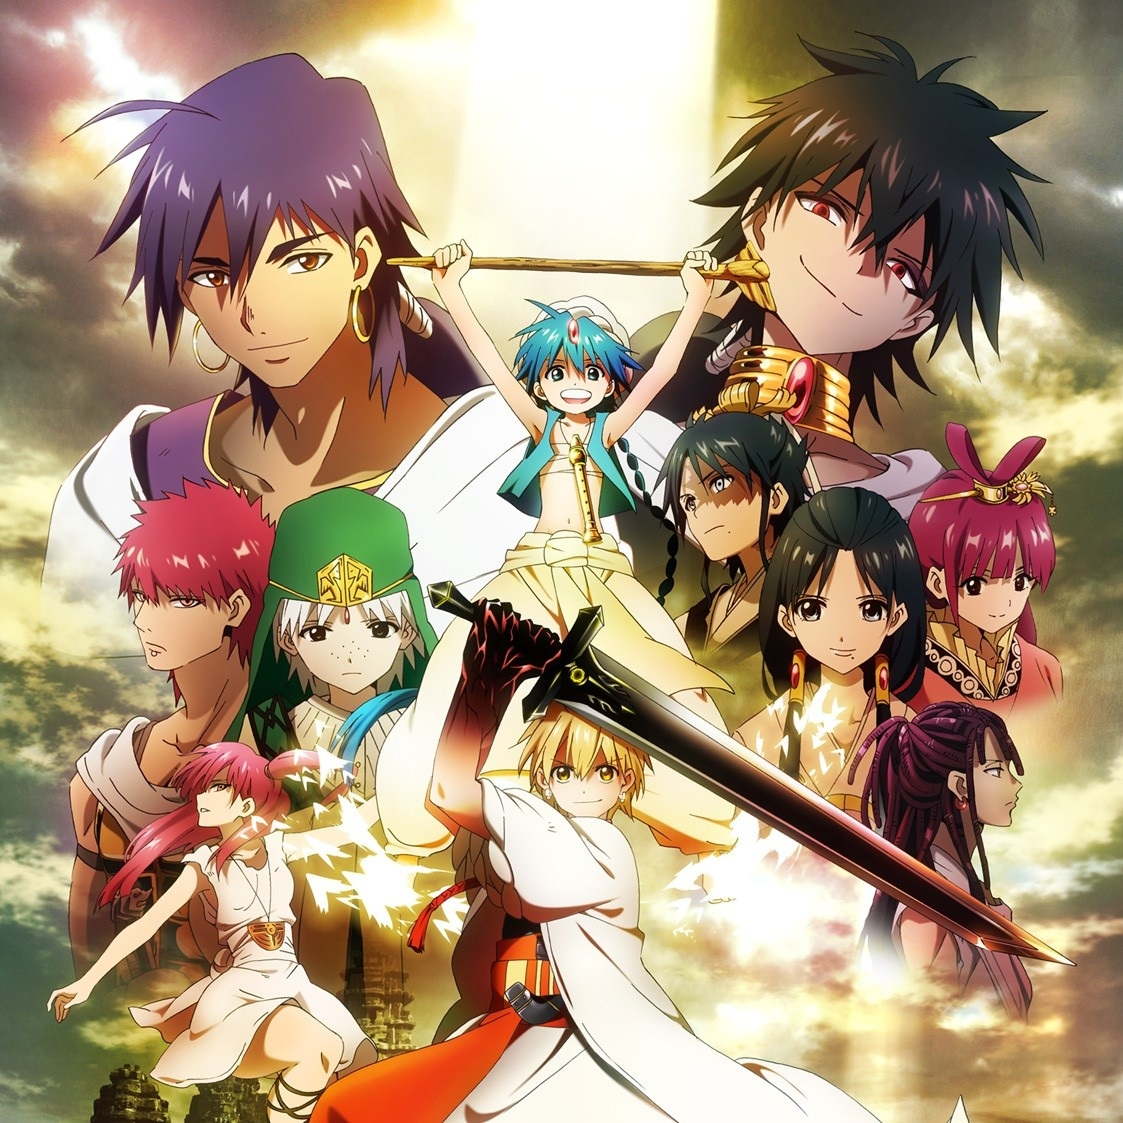 Magi - The Kingdom of Magic, Aladdin, Alibaba Saluja, Morgiana, Sinbad, Hakuryū Ren, Judal